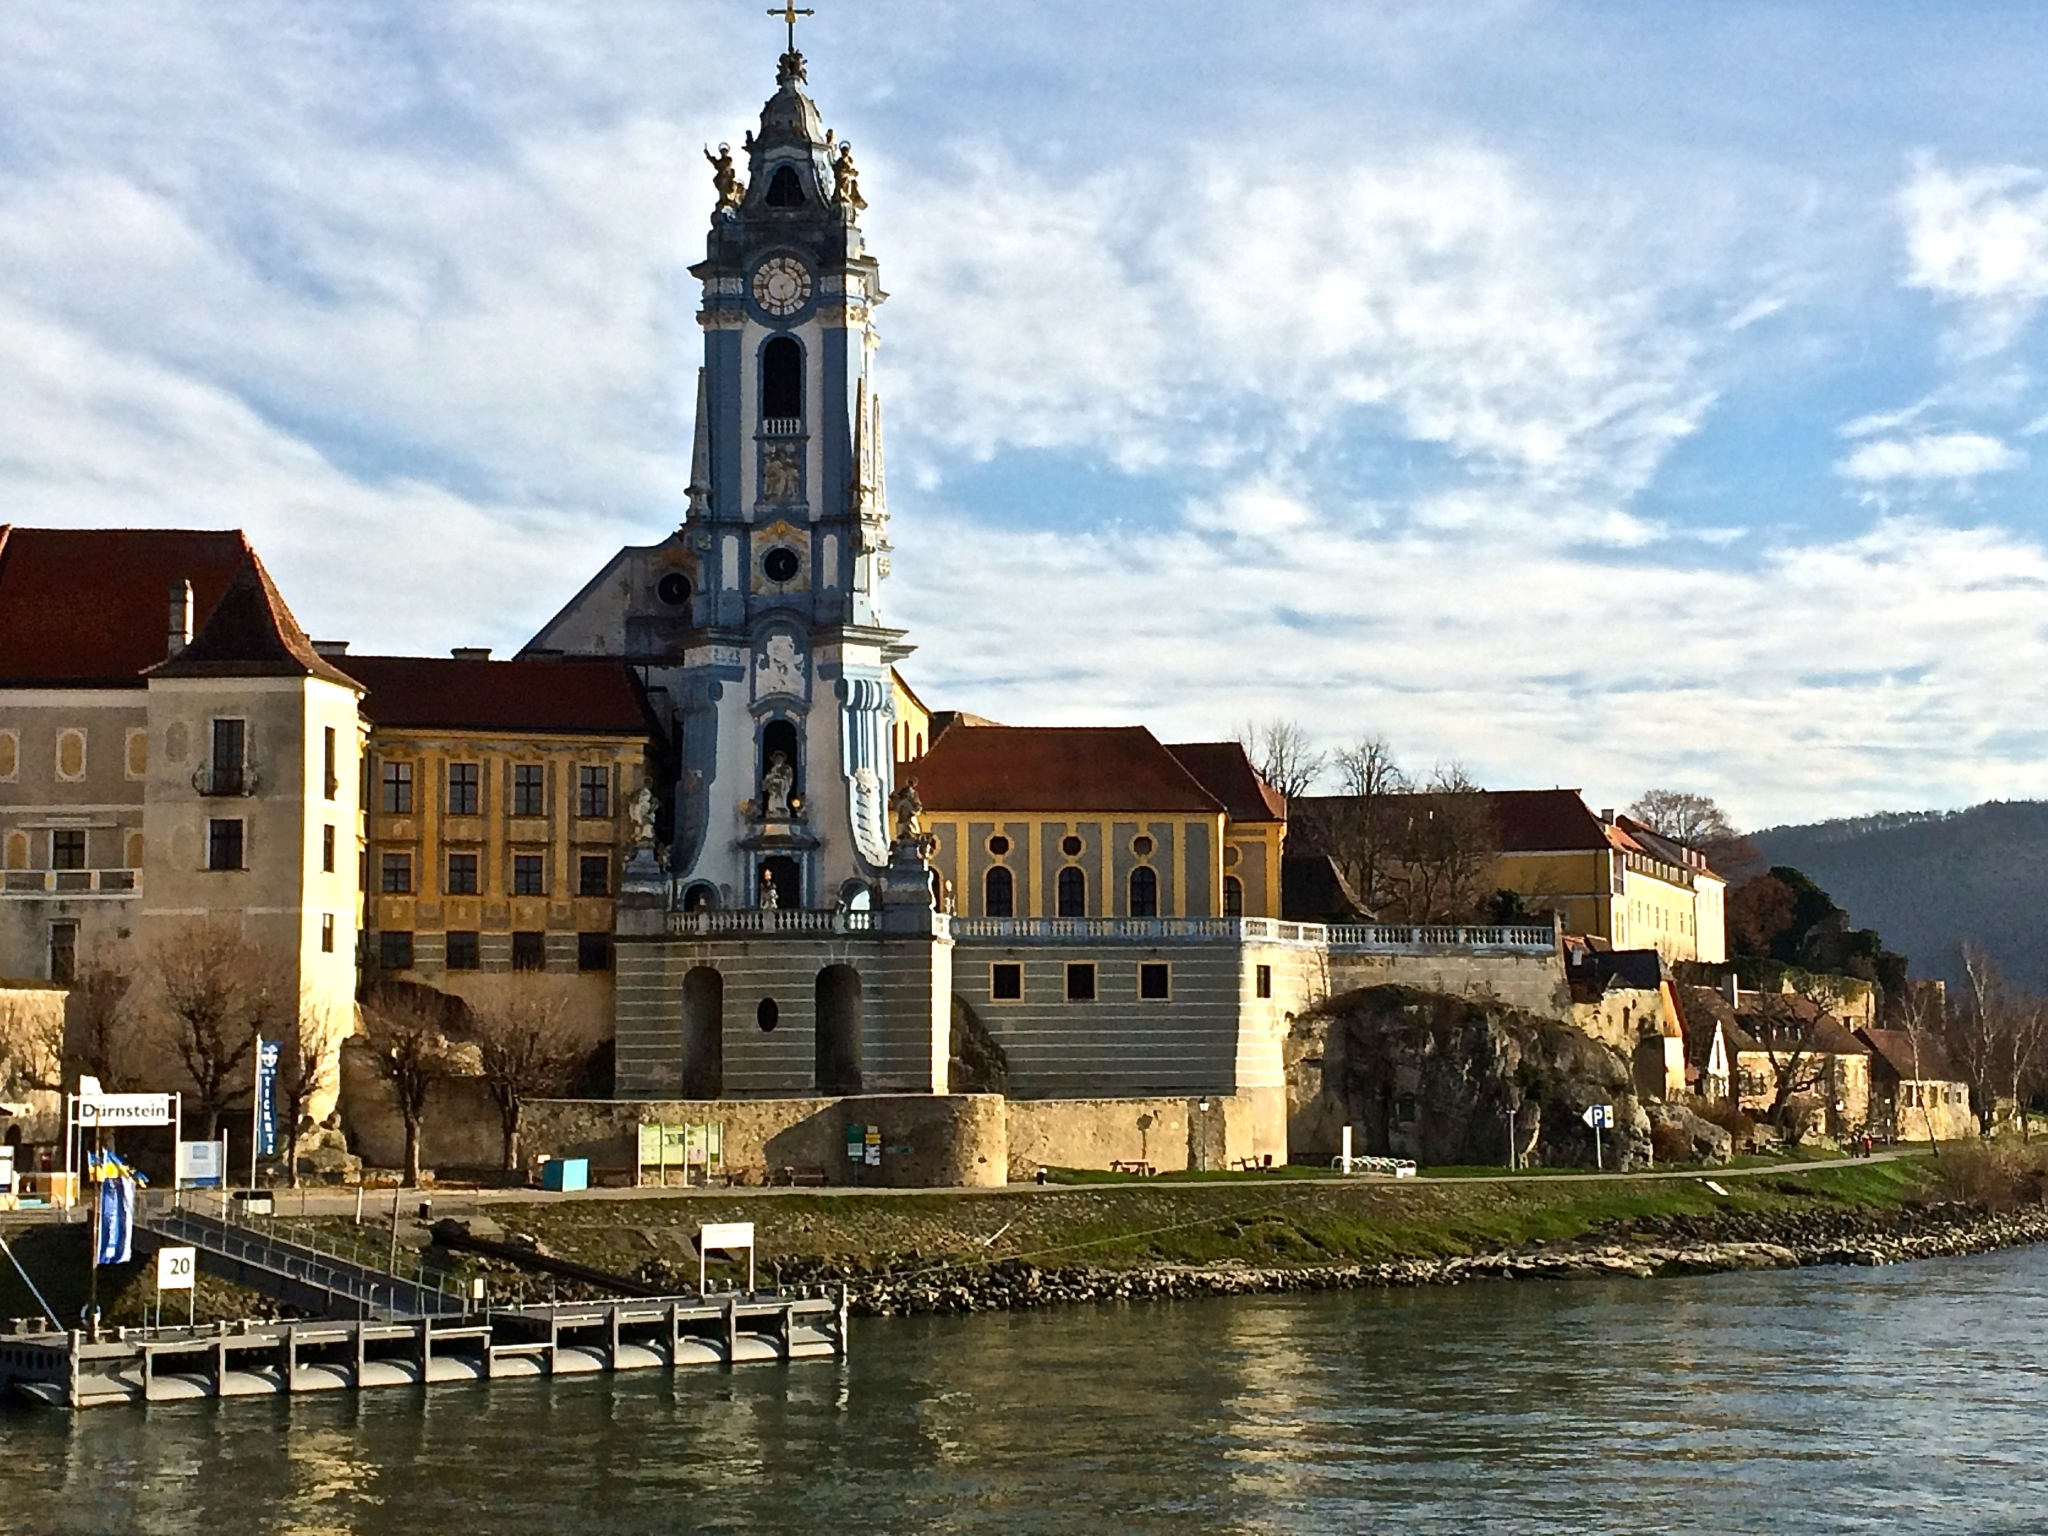 Viking River Cruise review - what to know if you're considering one